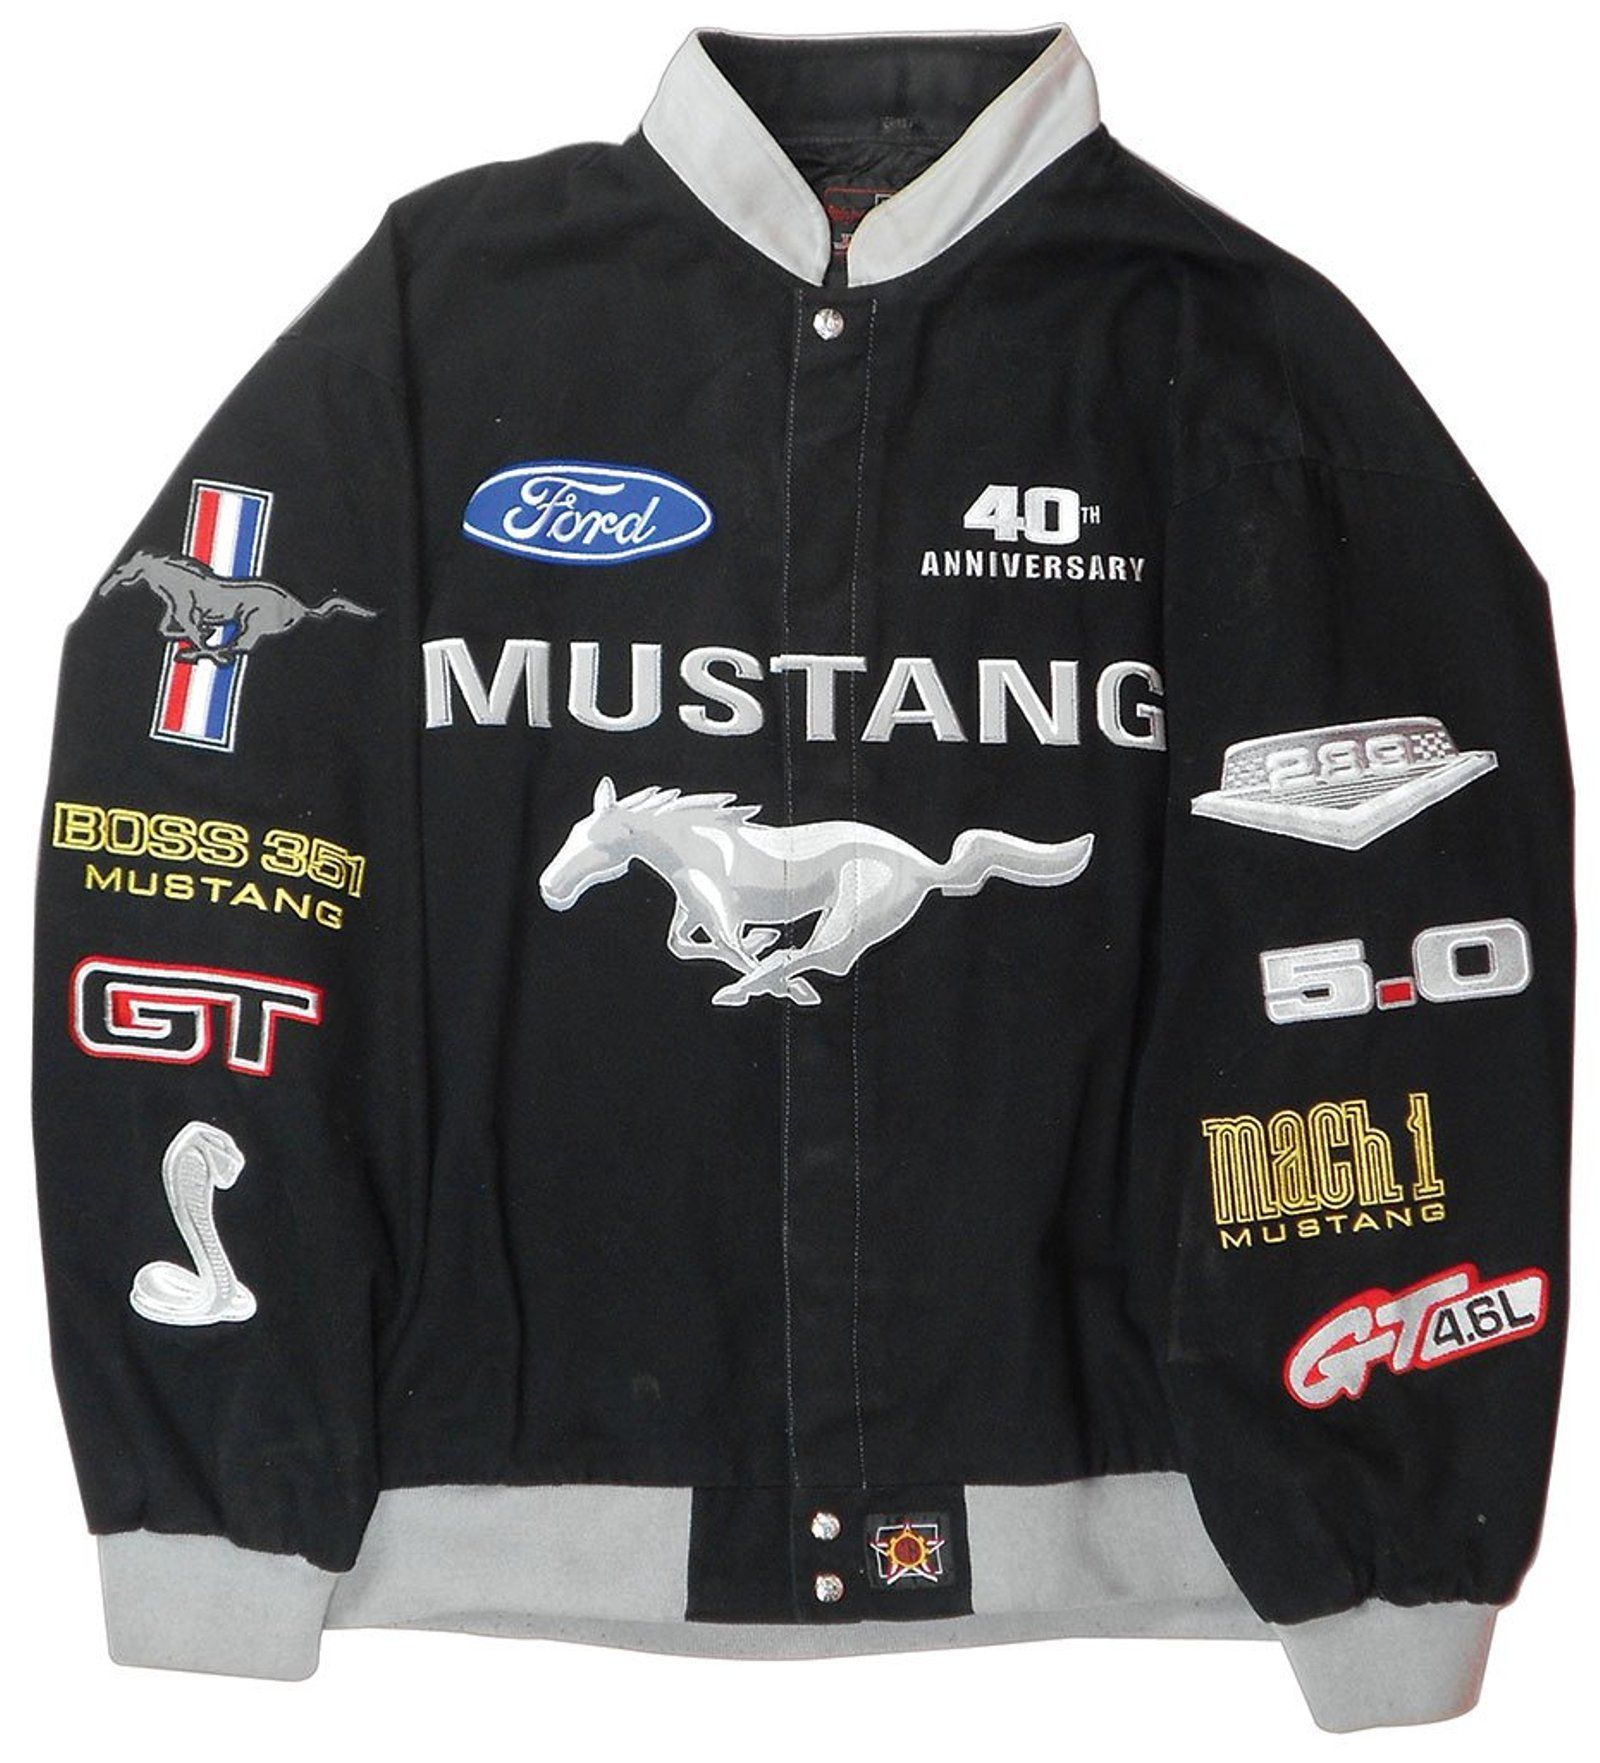 Ford Mustang 40th Anniversary Jacket Made By Jh May 31 2015